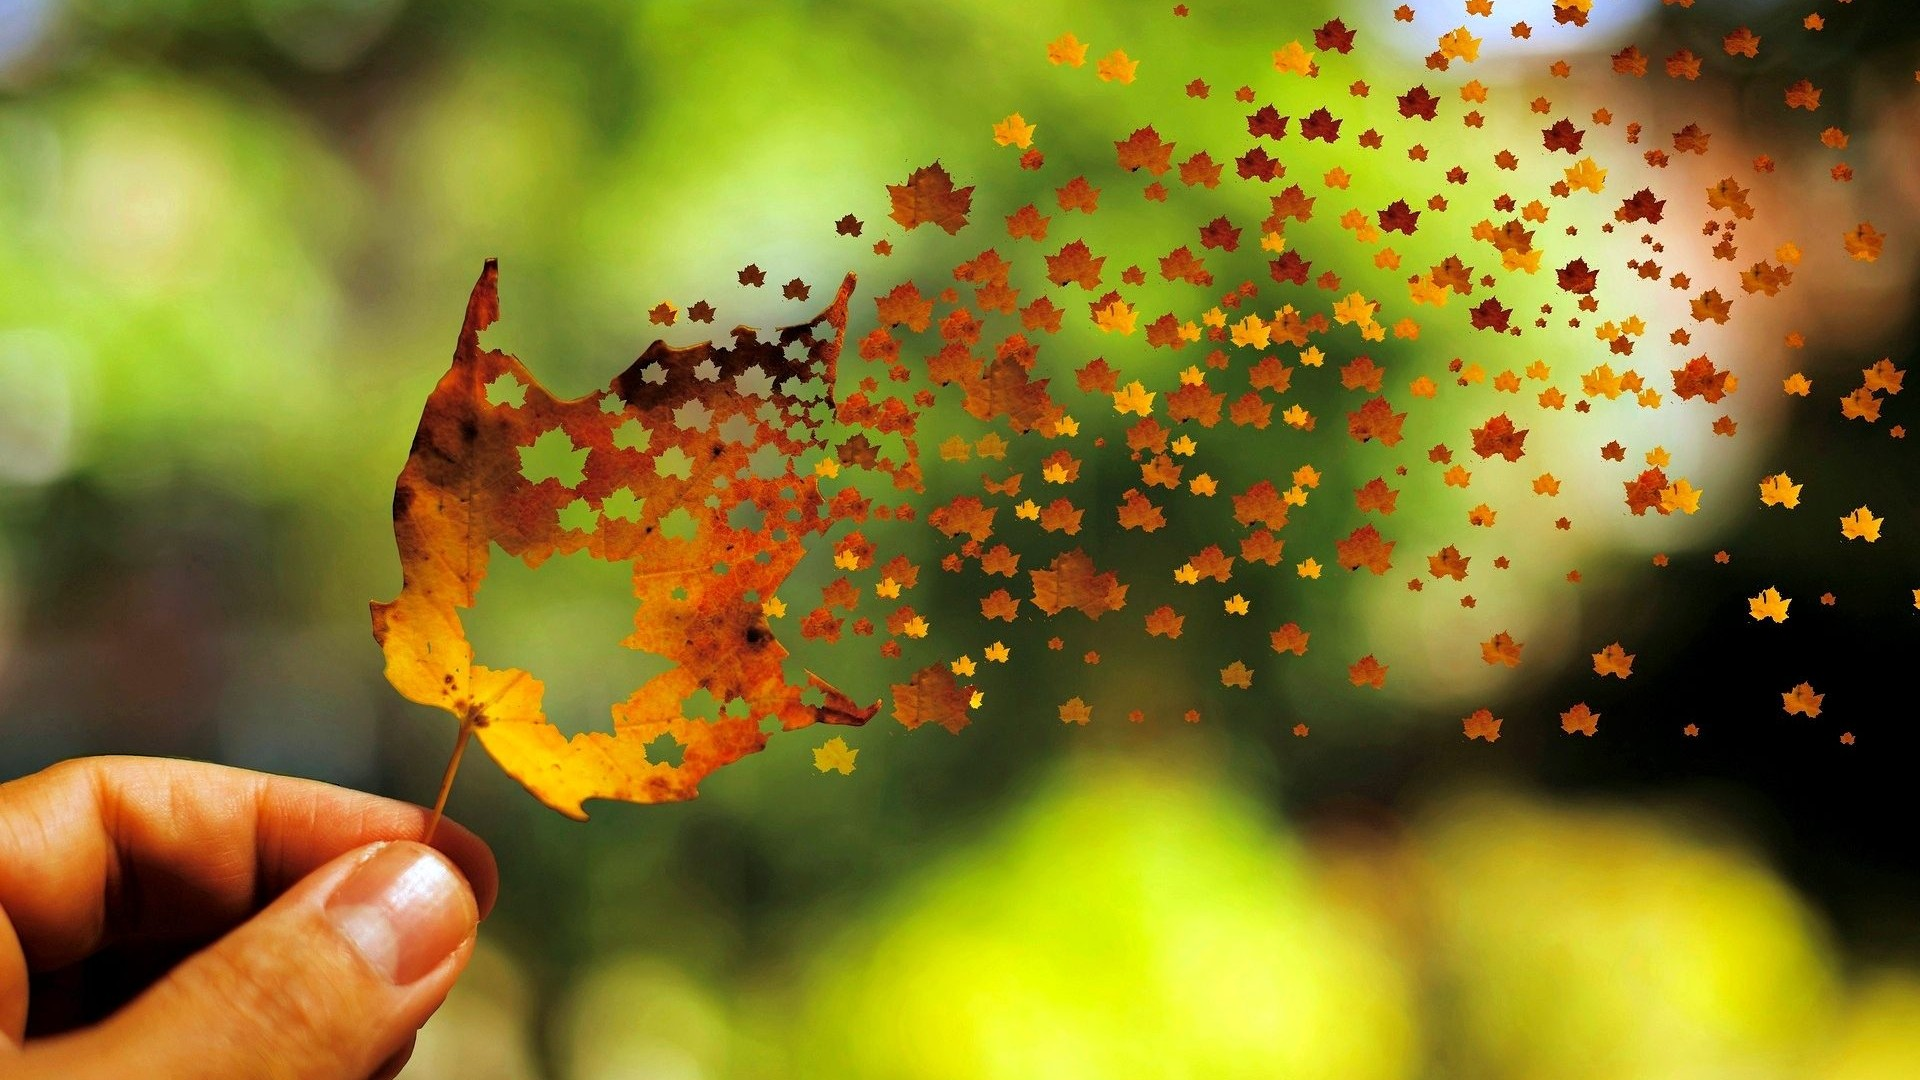 Autumn Leaf Art Of Fall Leaves Wallpaper Of Beautiful Nature